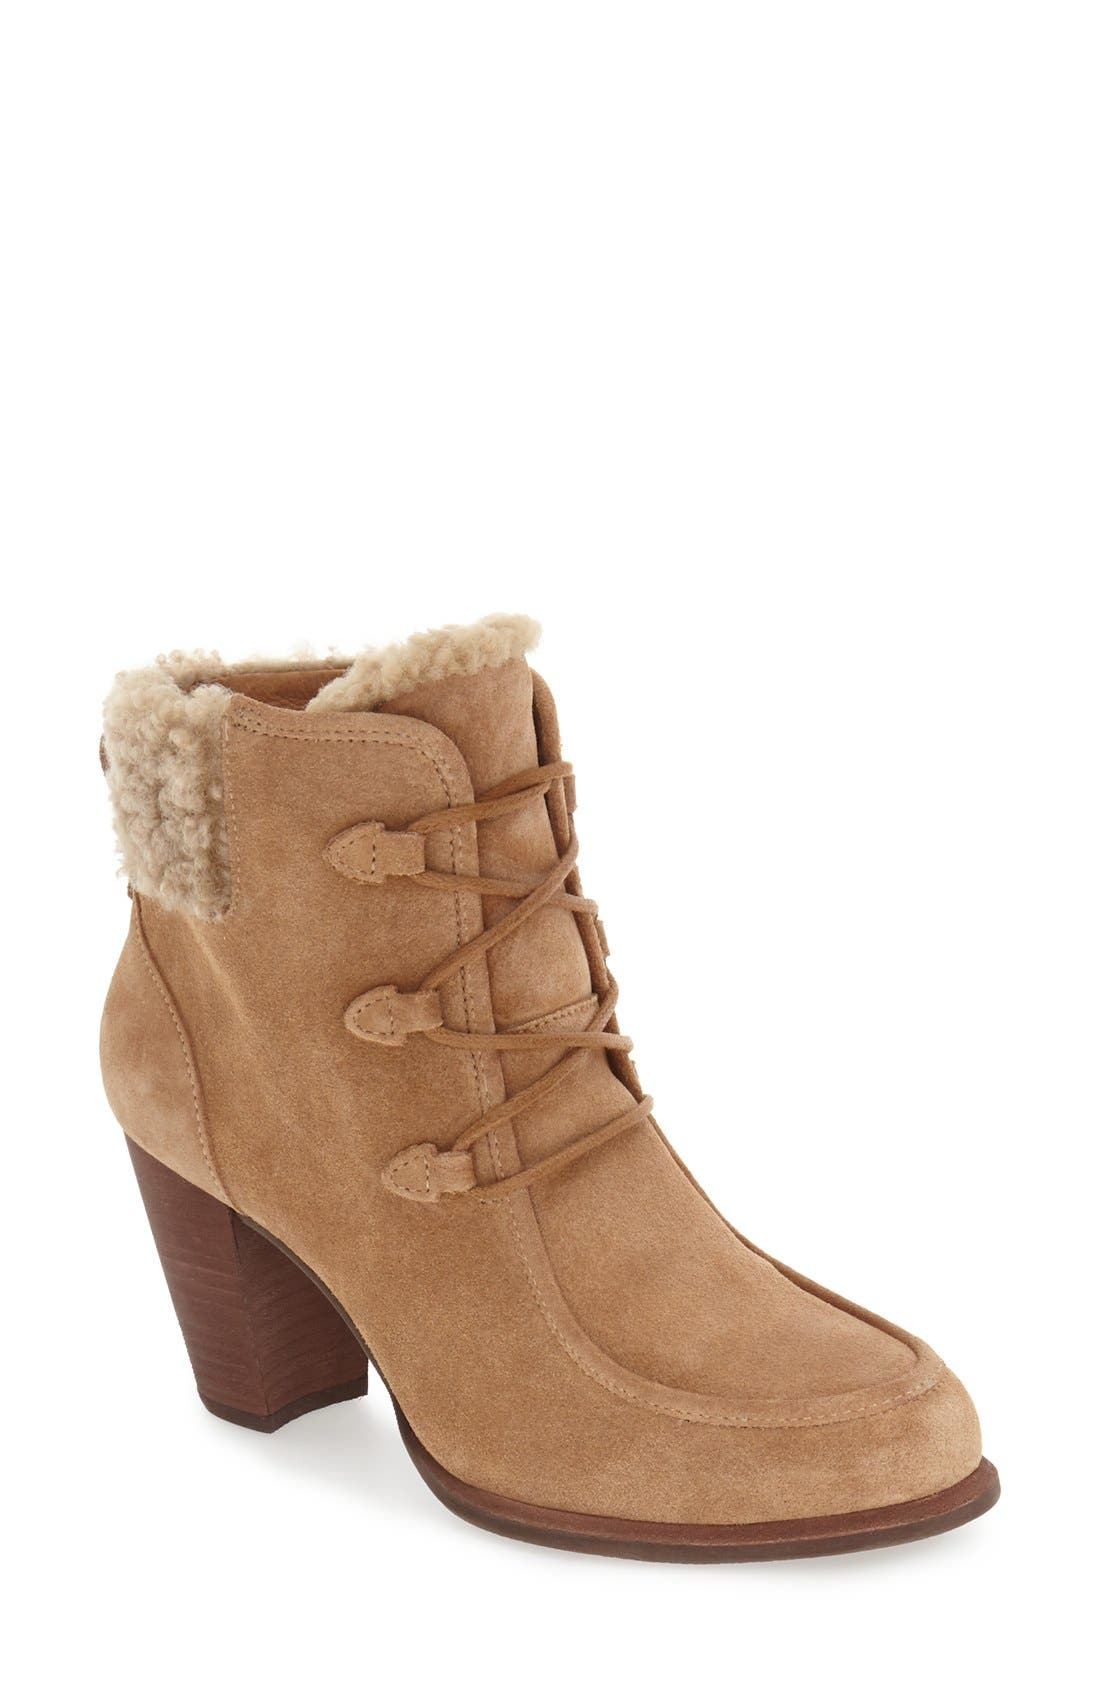 Main Image - UGG® Australia 'Analise' Hiker Bootie (Women)